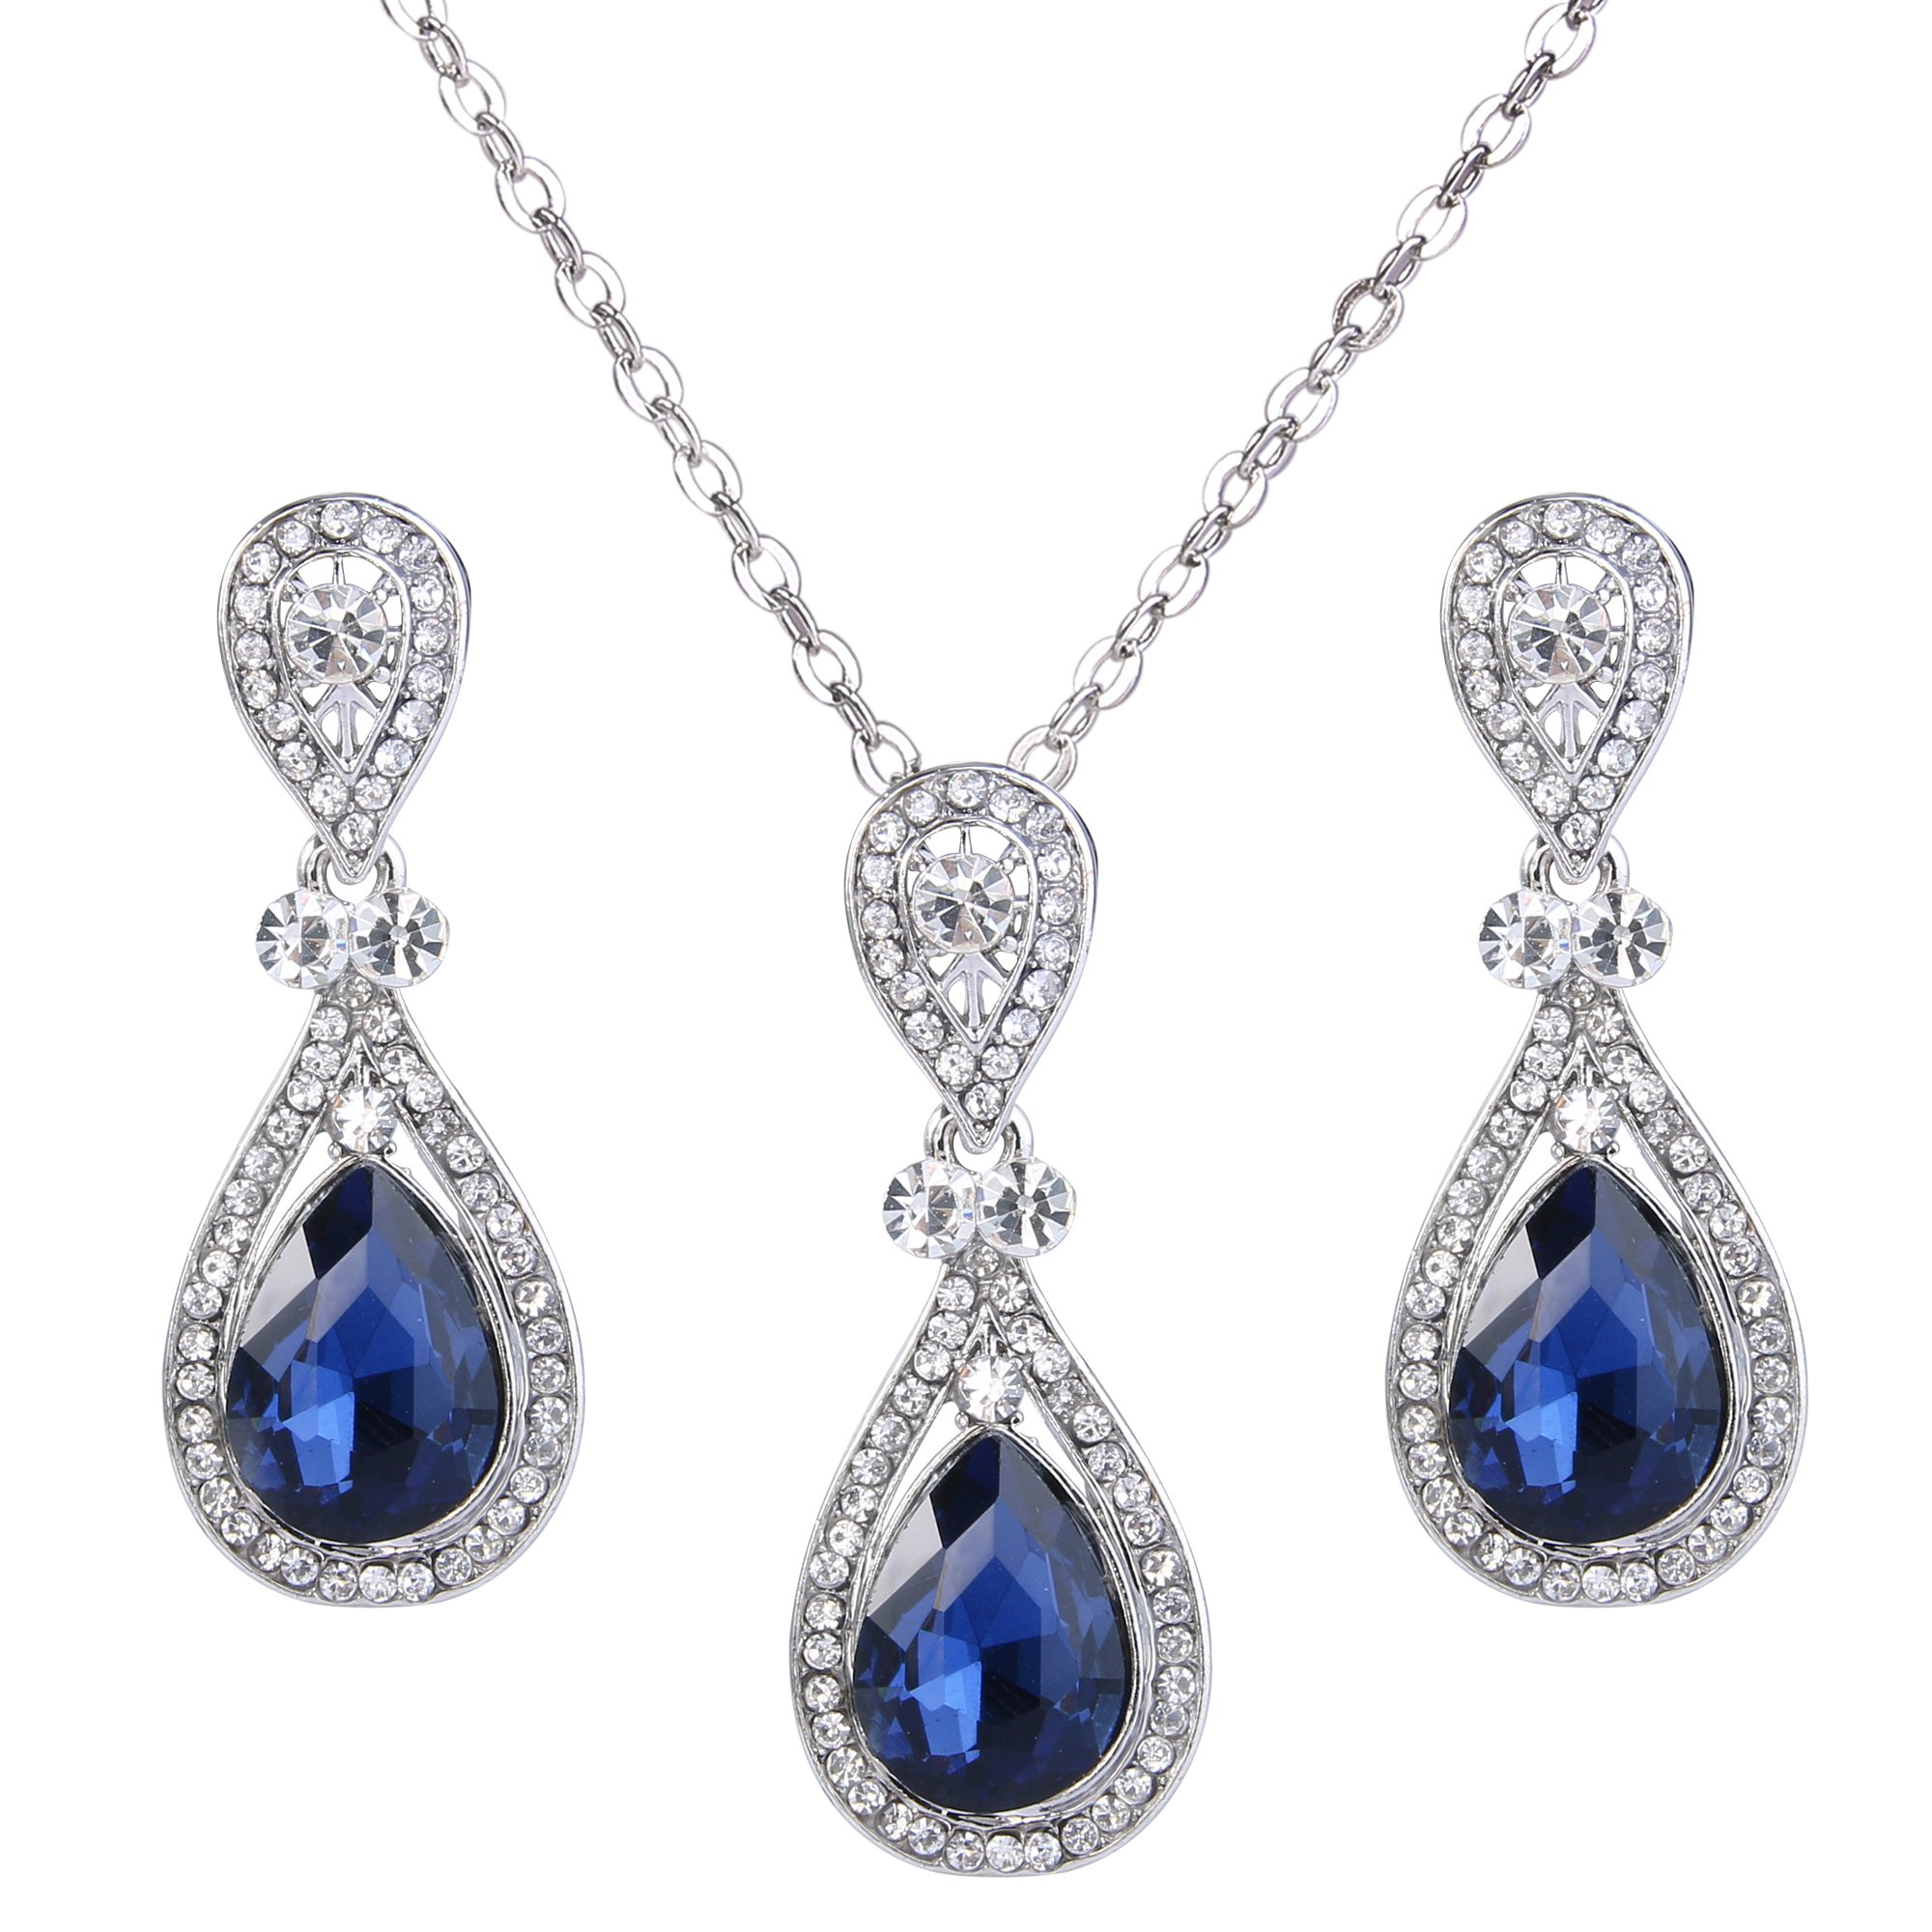 BriLove Women's Wedding Bridal Pendant Necklace Dangle Earrings Jewelry Set with Elegant Crystal Teardrop Sapphire Color Silver-Tone